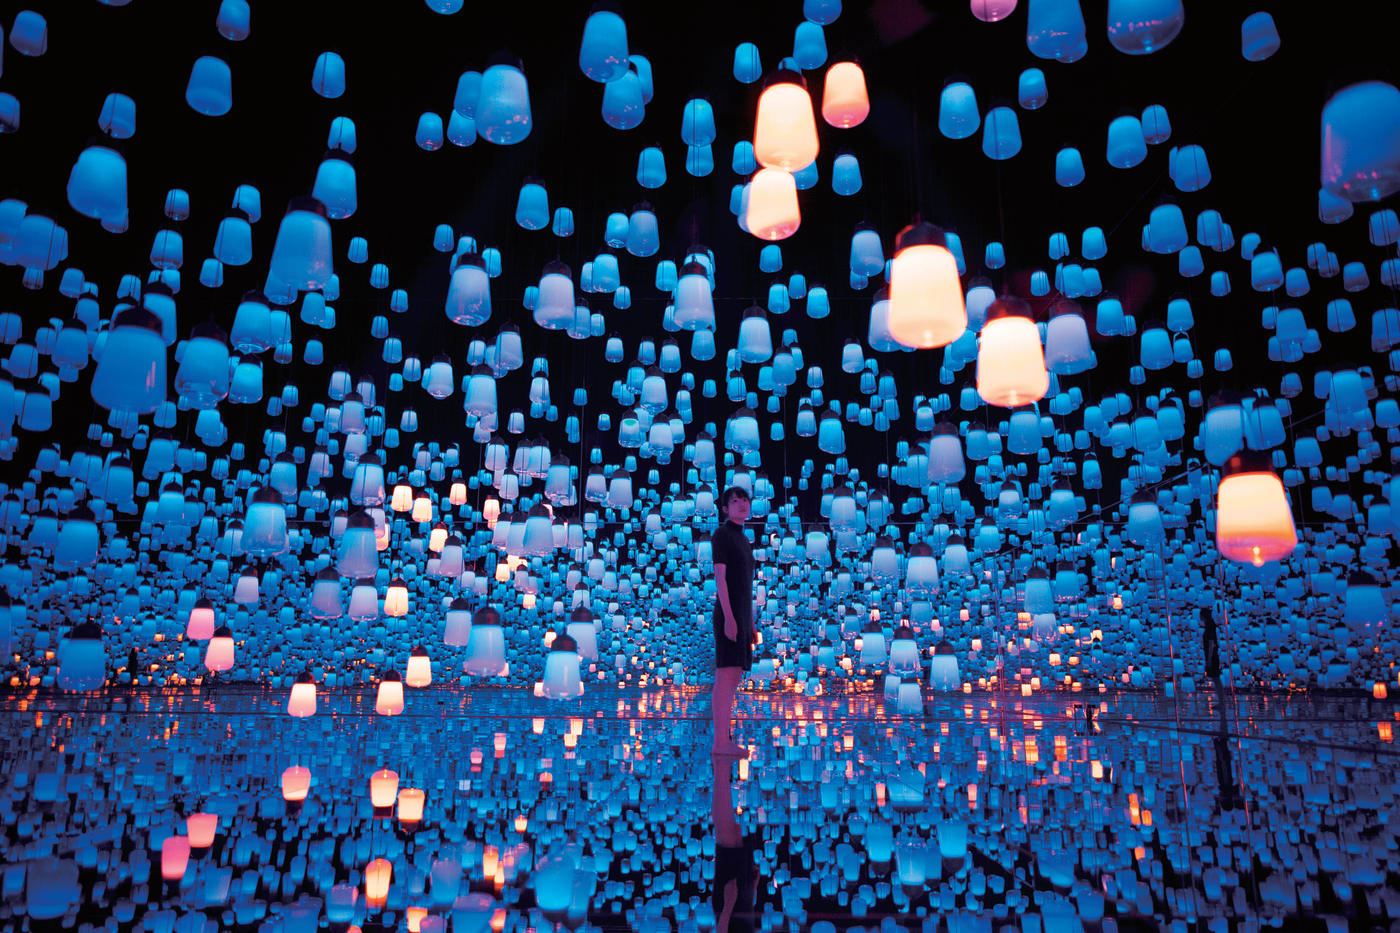 Immerse Your Body And Mind In A High Tech Museum Without Borders Experiences In Japan